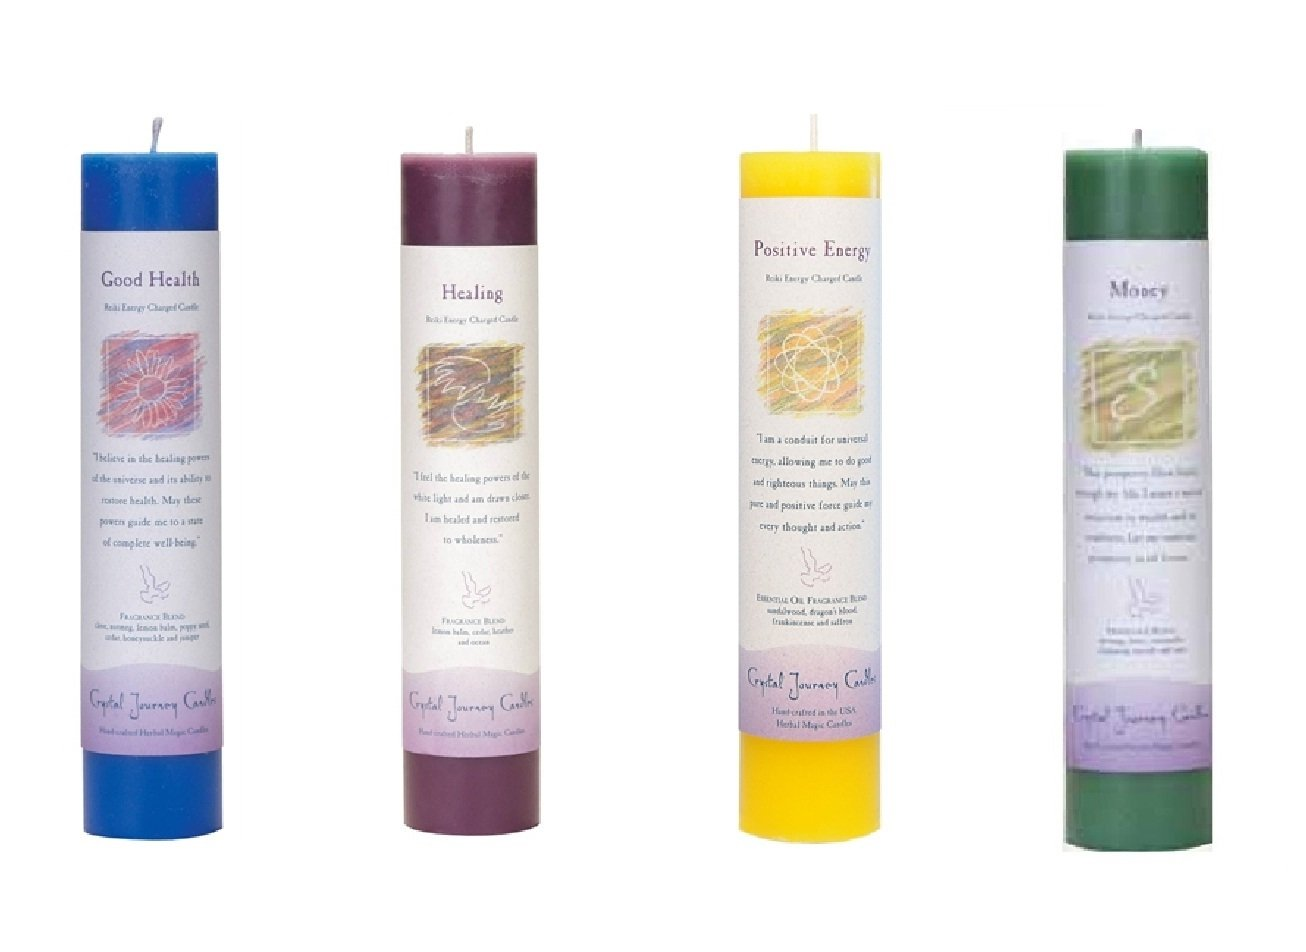 Crystal Journey Reiki Charged Herbal Magic Pillar Candle with Inspirational Labels - Bundle of 4 (Good Health, Healing, Positive Energy, Money) Each 7''x1.5'' handcrafted with lead-free materials by Crystal Journey